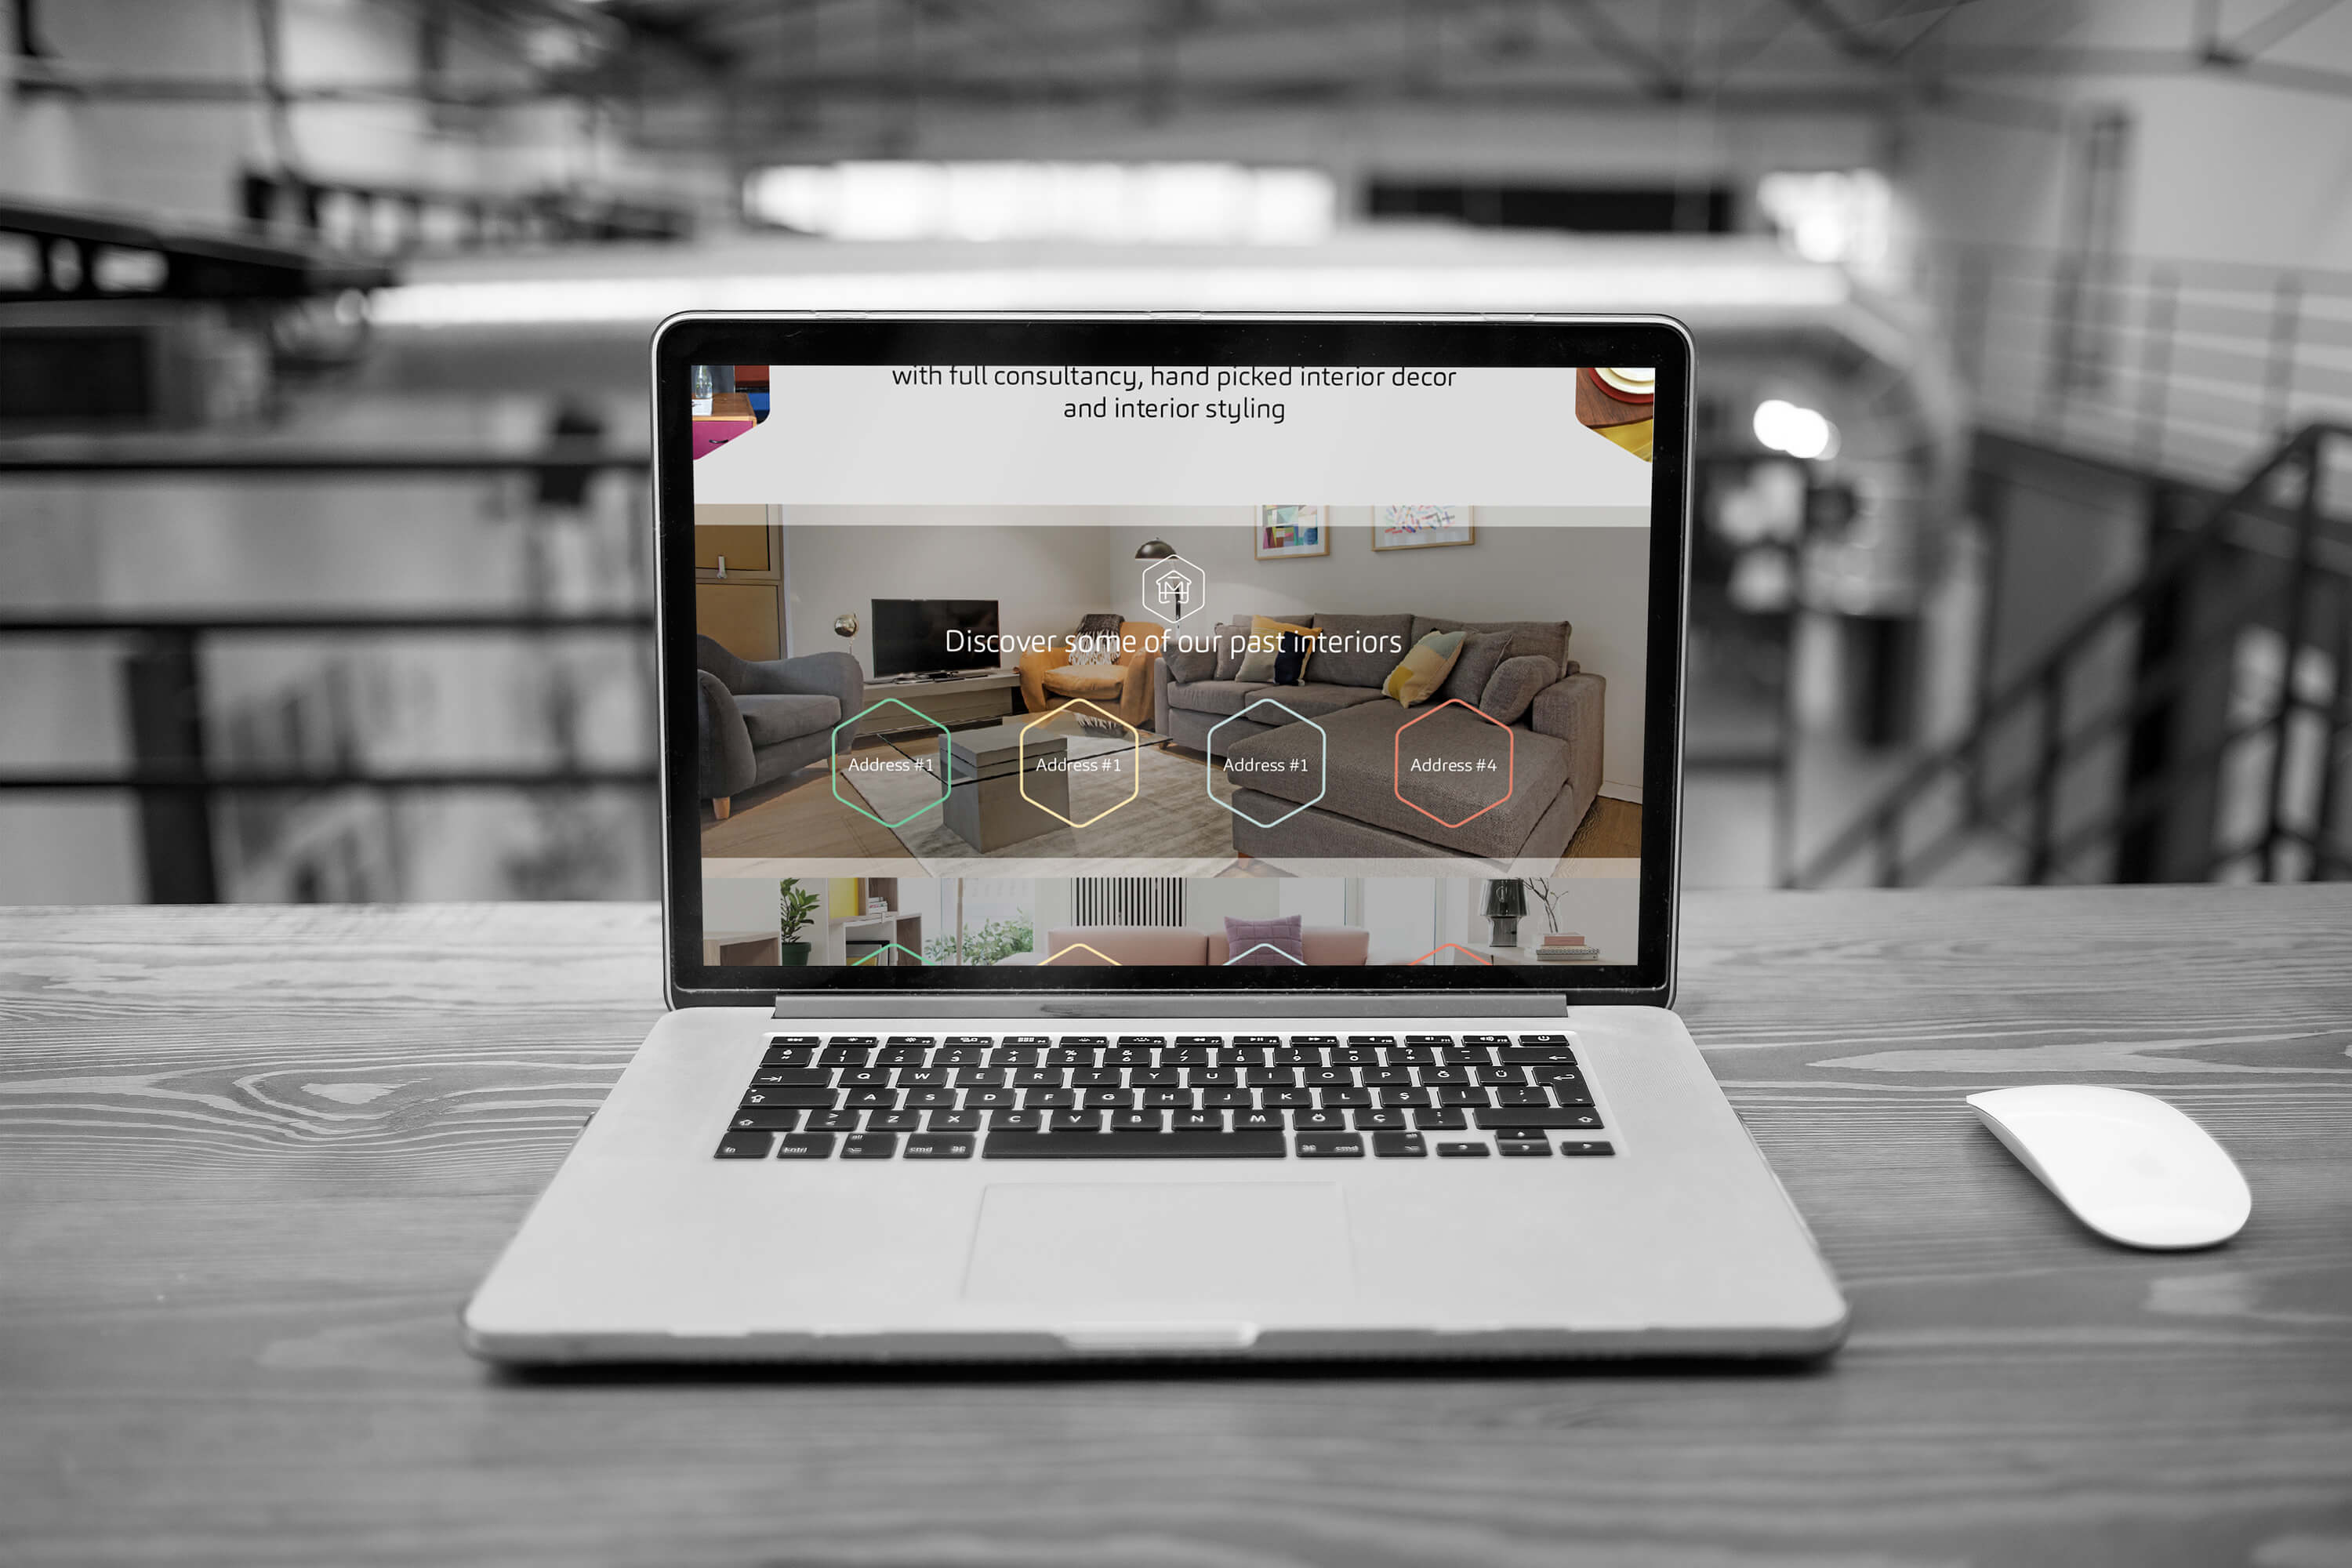 A laptop on a desk showing the Make My House Home interior page design